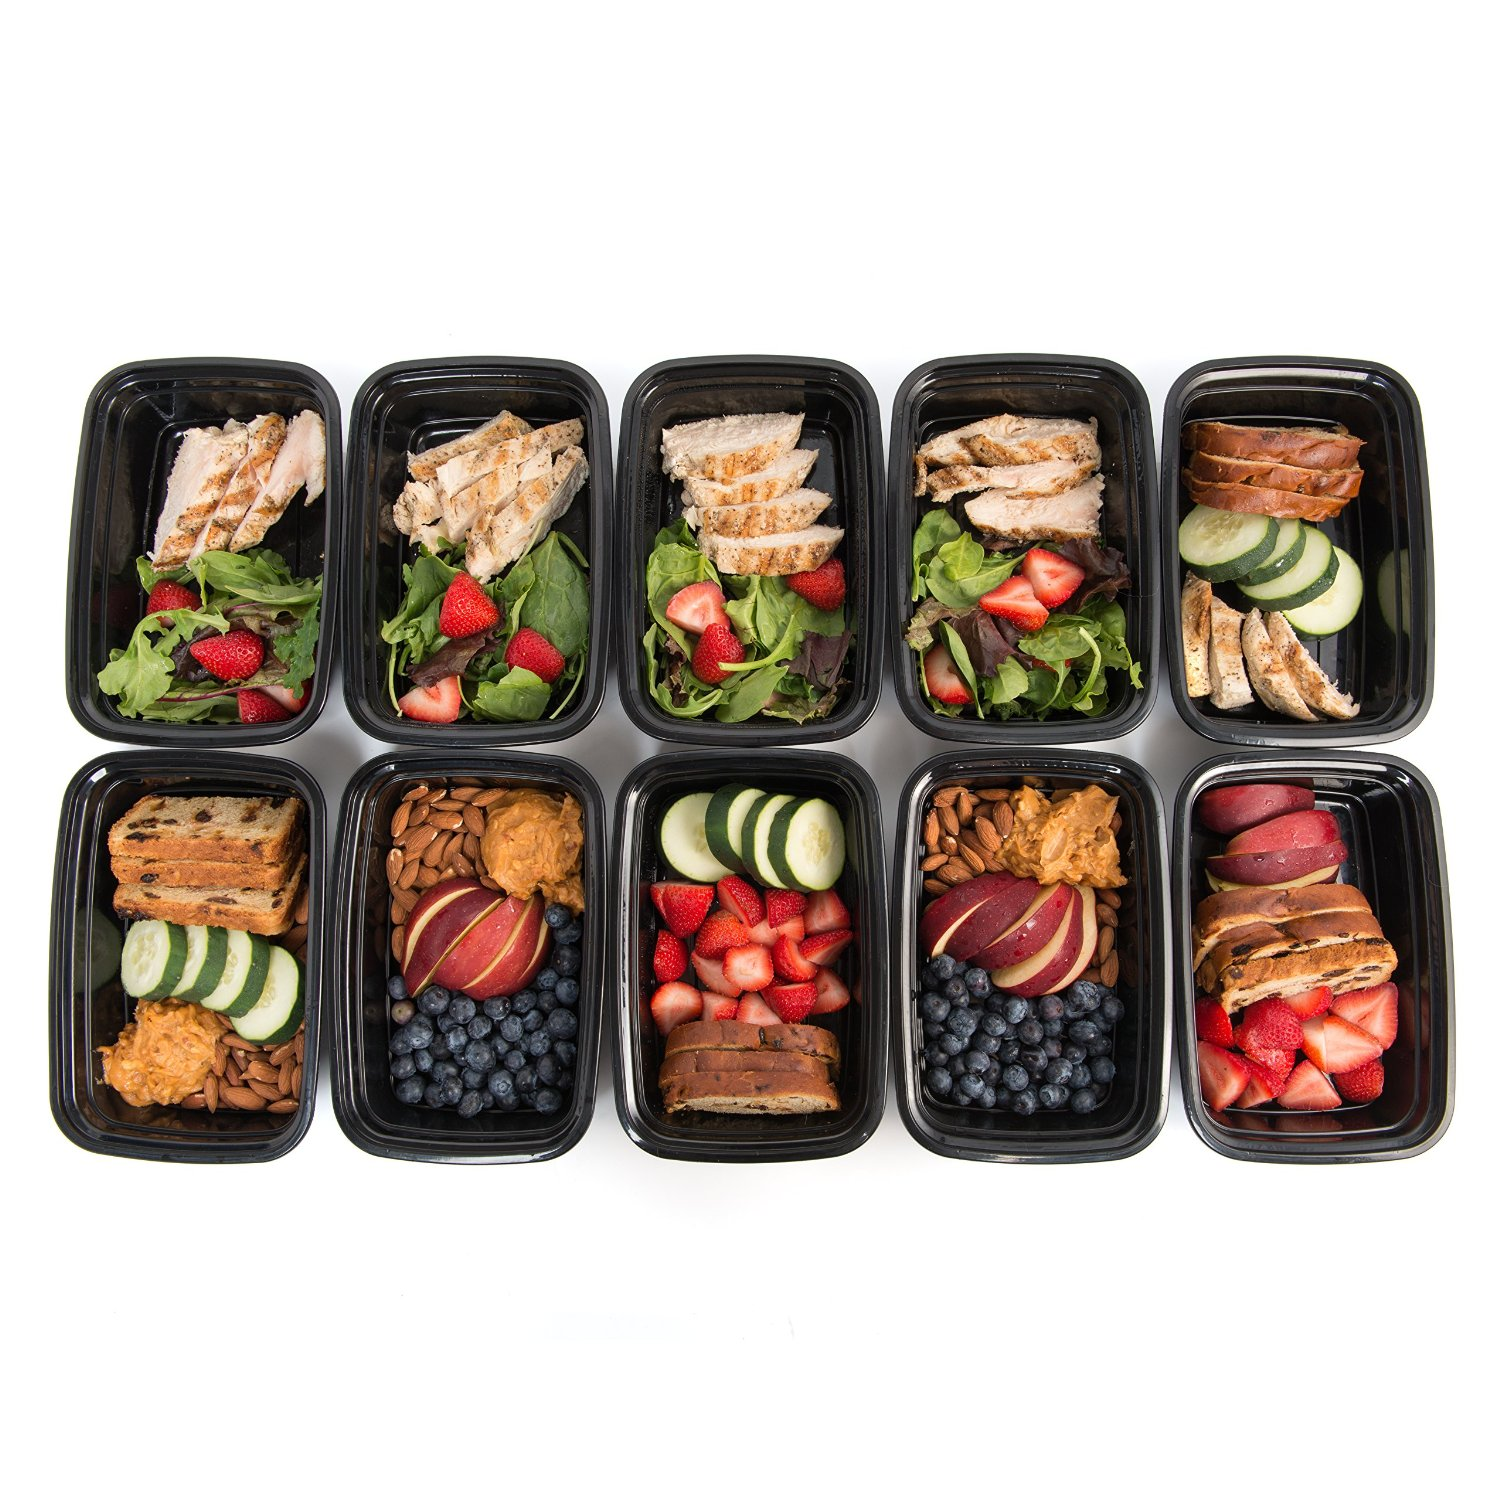 10 meal prep food storage containers 1 compartment plastic lunch reusable bento ebay. Black Bedroom Furniture Sets. Home Design Ideas